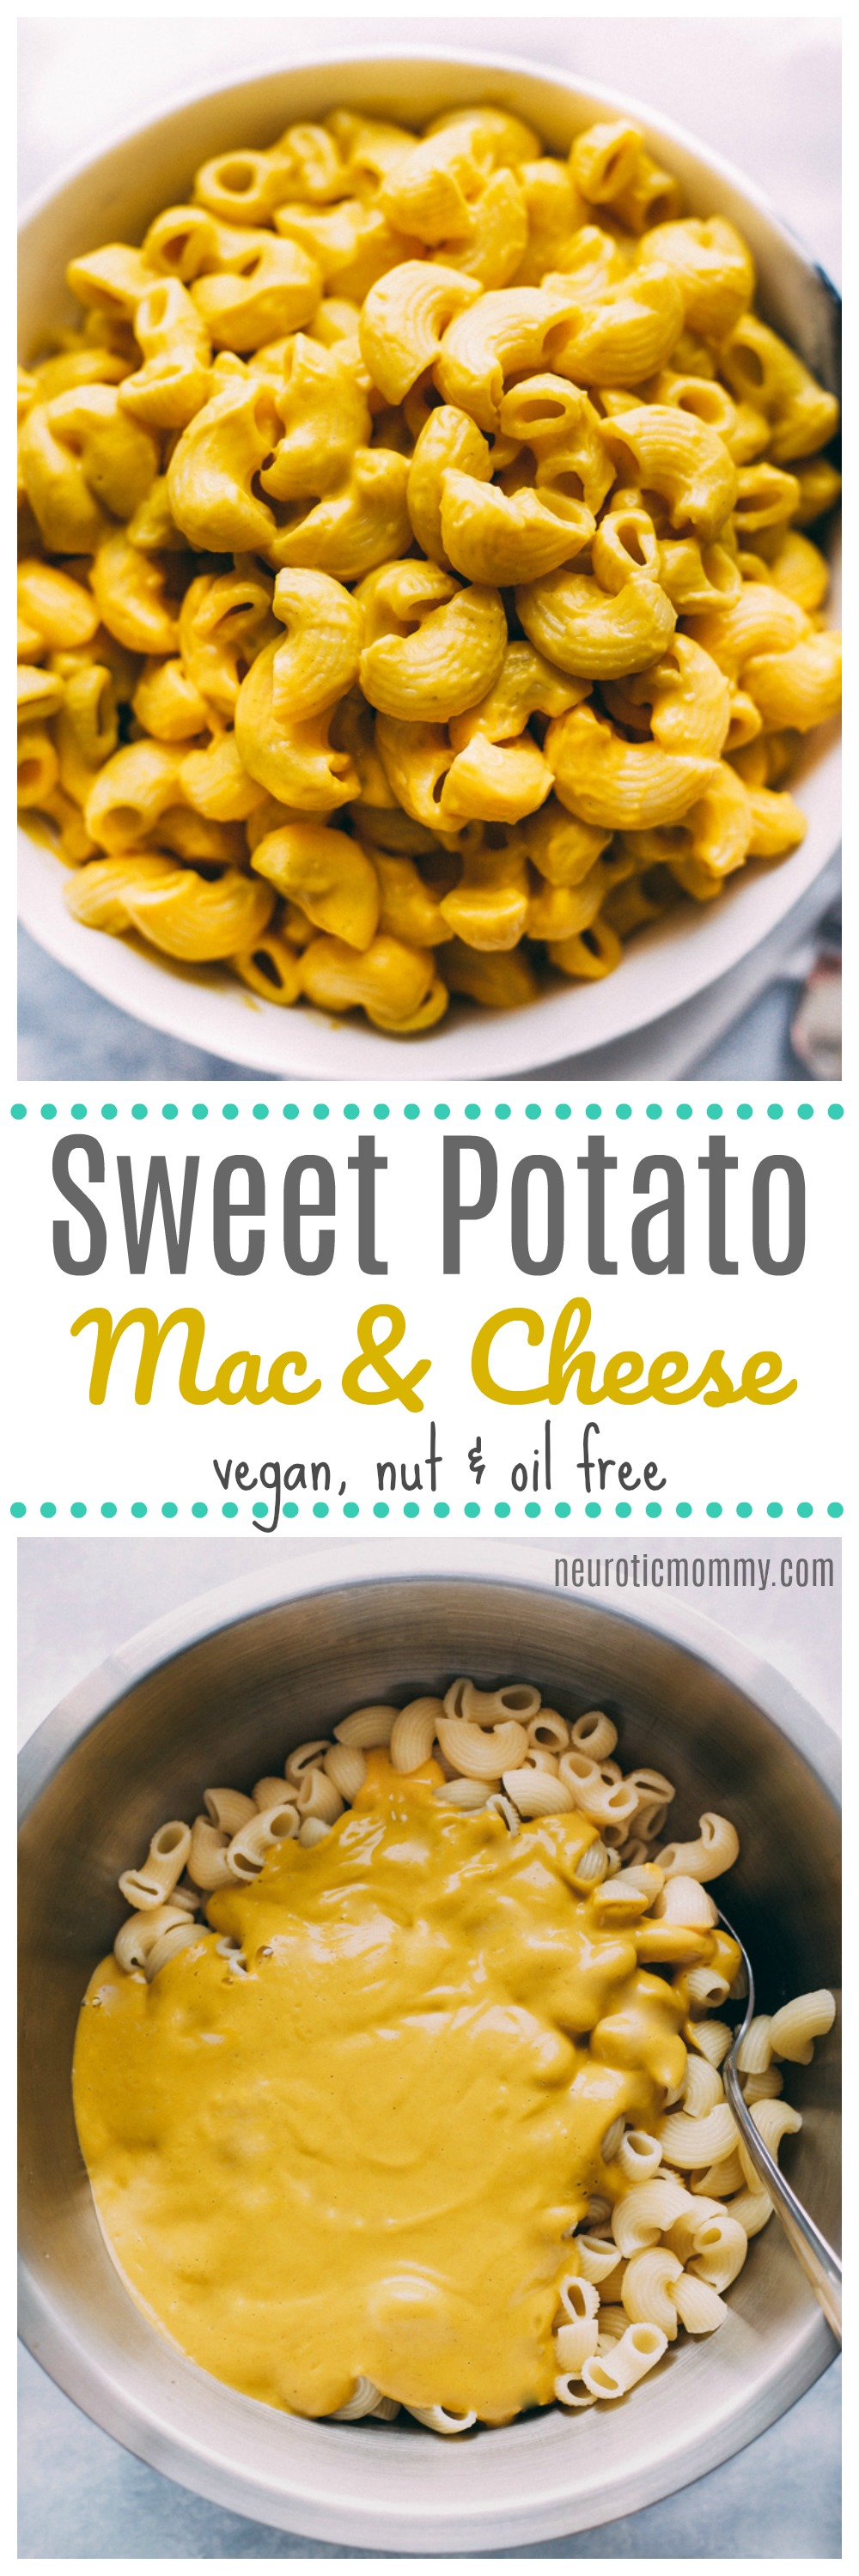 Sweet Potato Mac & Cheese - This will be your new favorite vegan cheese dish. It's healthy, nut free, super smooth, creamy and delicious. NeuroticMommy.com #vegan #sweetpotato